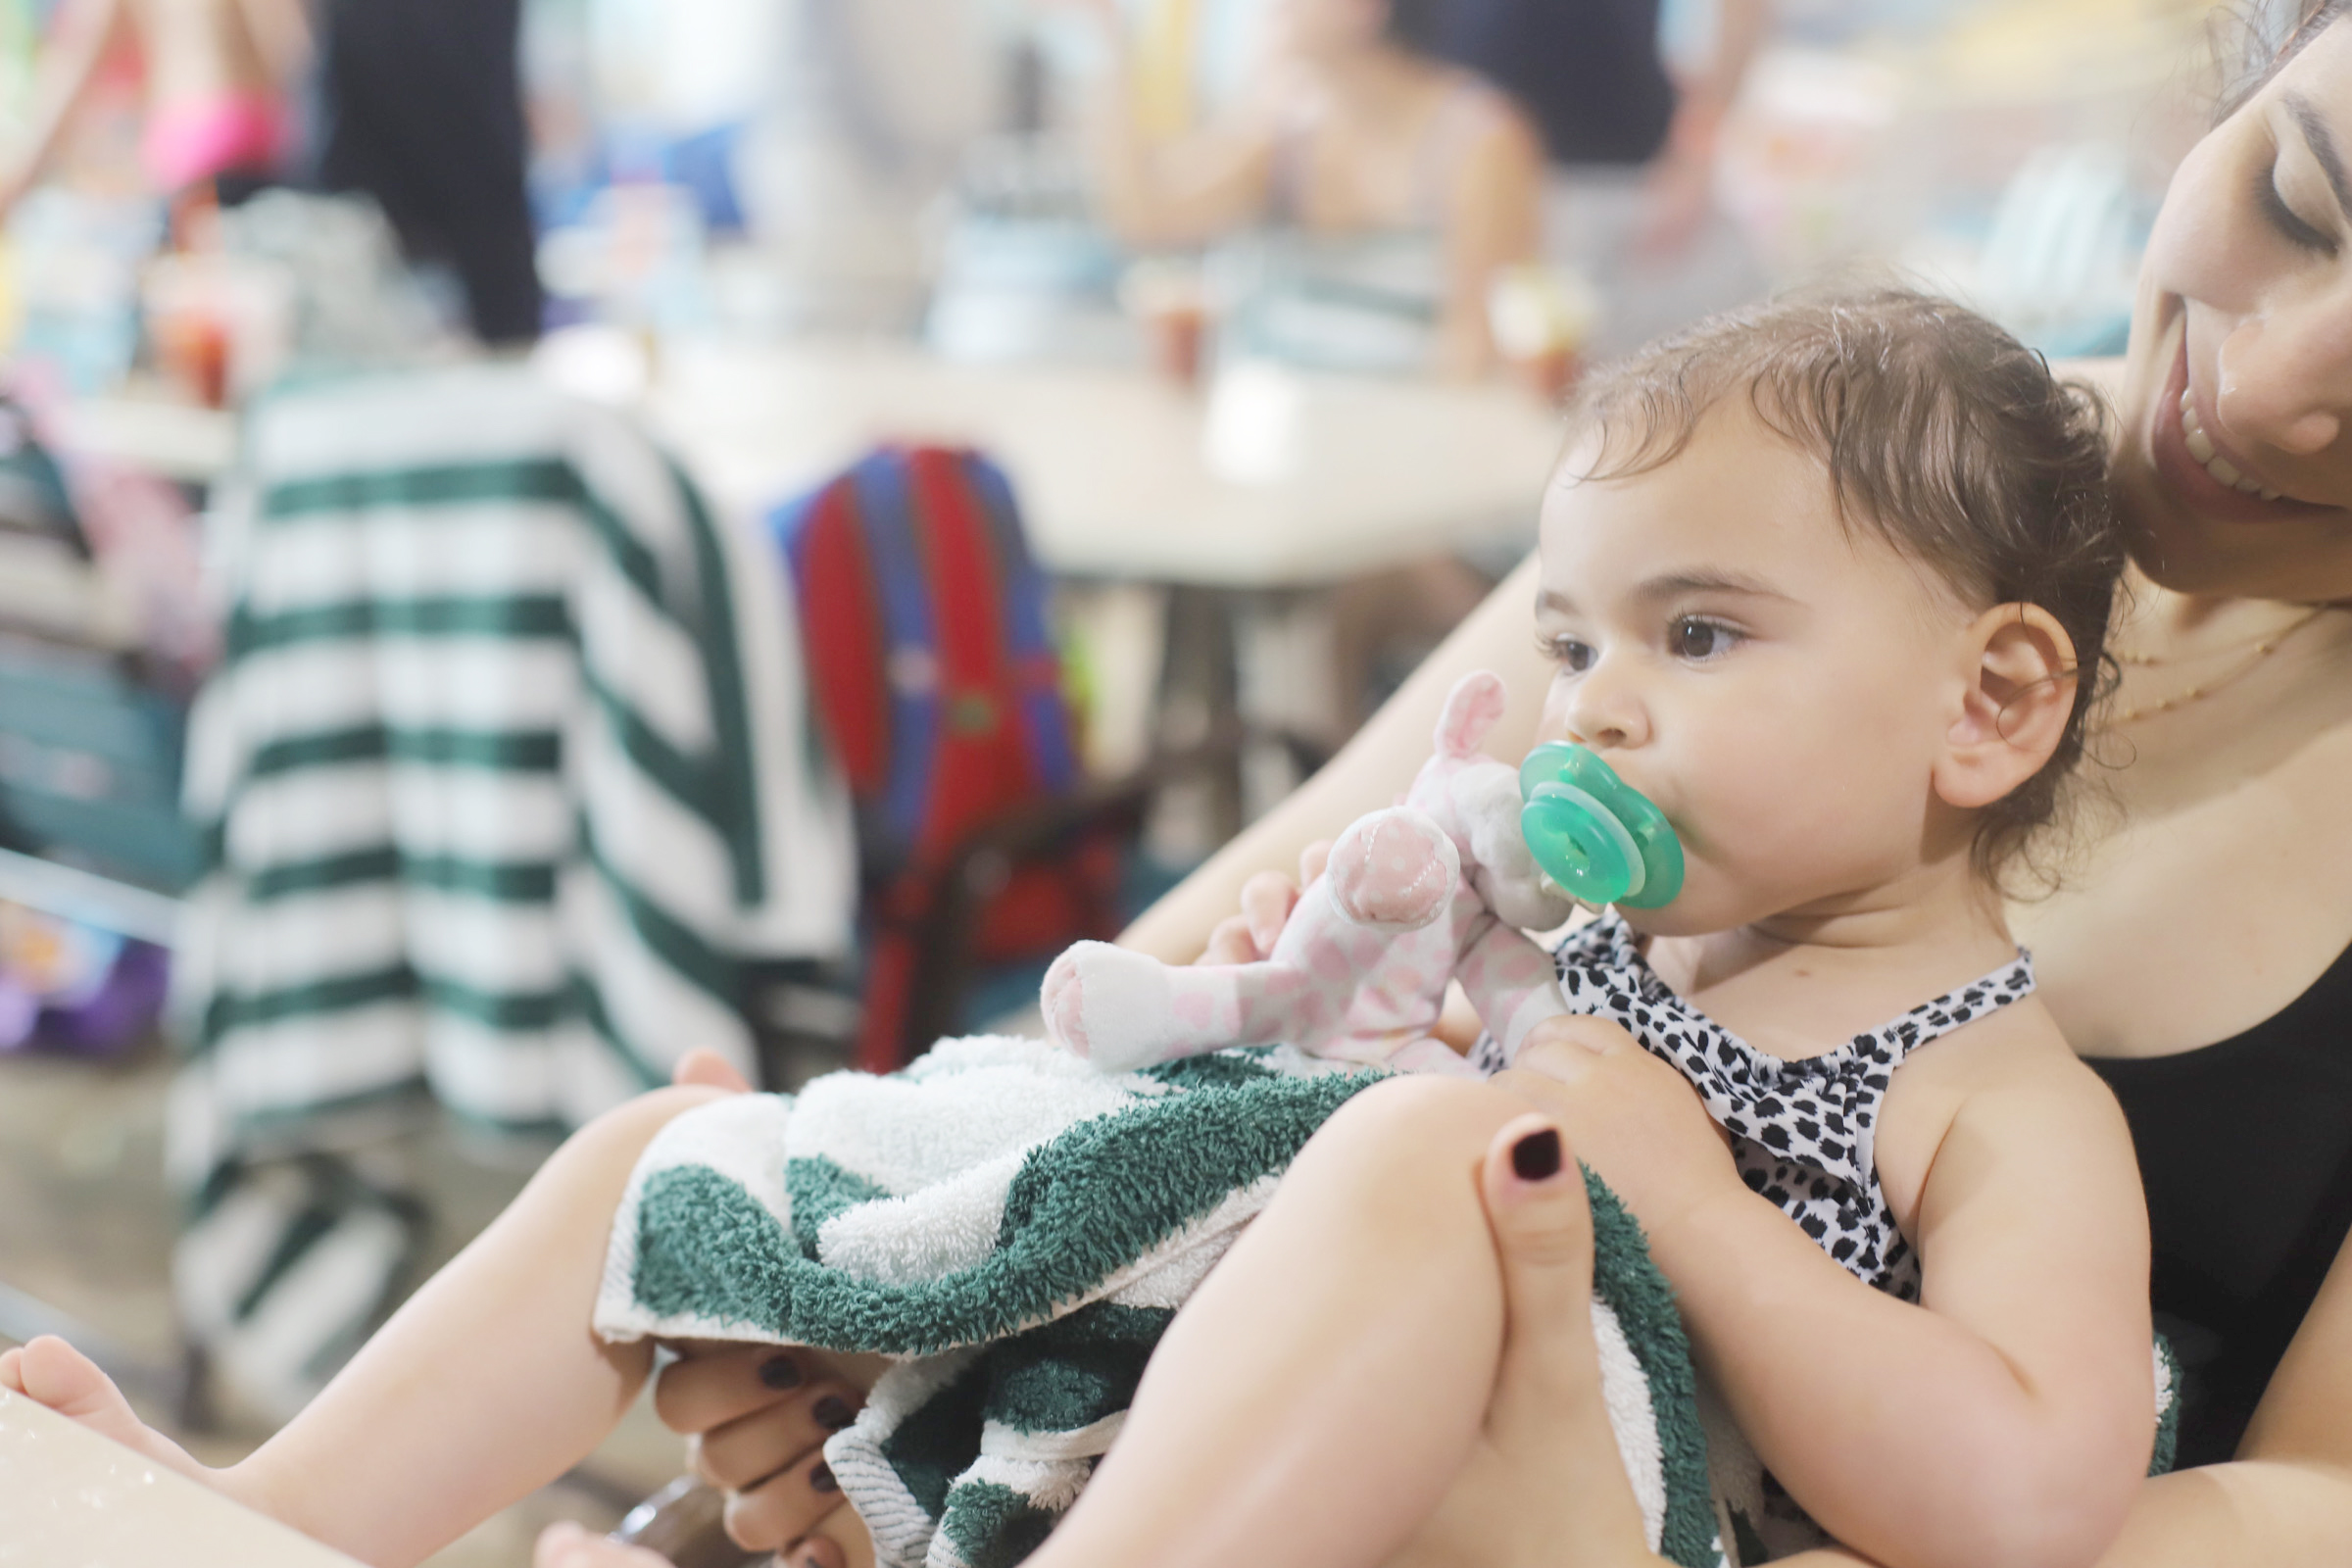 Planning a family trip to the Great Wolf Lodge? We're sharing all about our weekend vacation at Great Wolf Lodge in New England (just outside of Boston), and how to have the best time ever with your kids. | glitterinc.com | @glitterinc